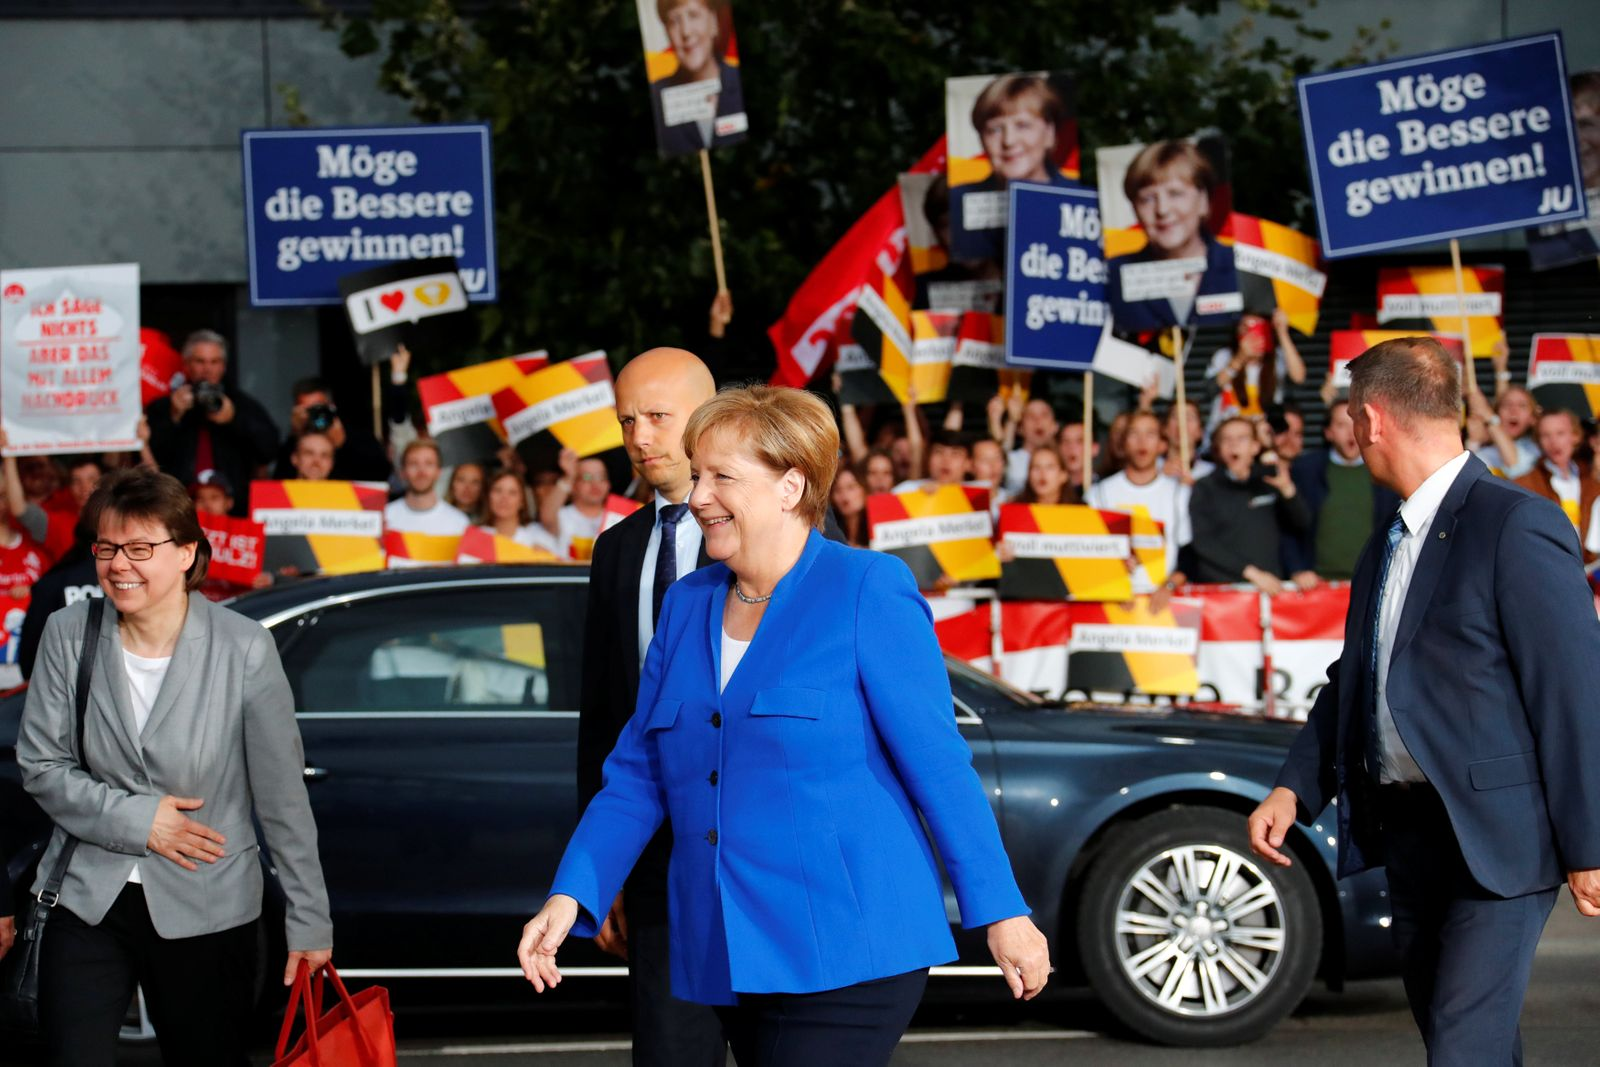 GERMANY-ELECTION/MERKEL-SCHULZ DEBATE